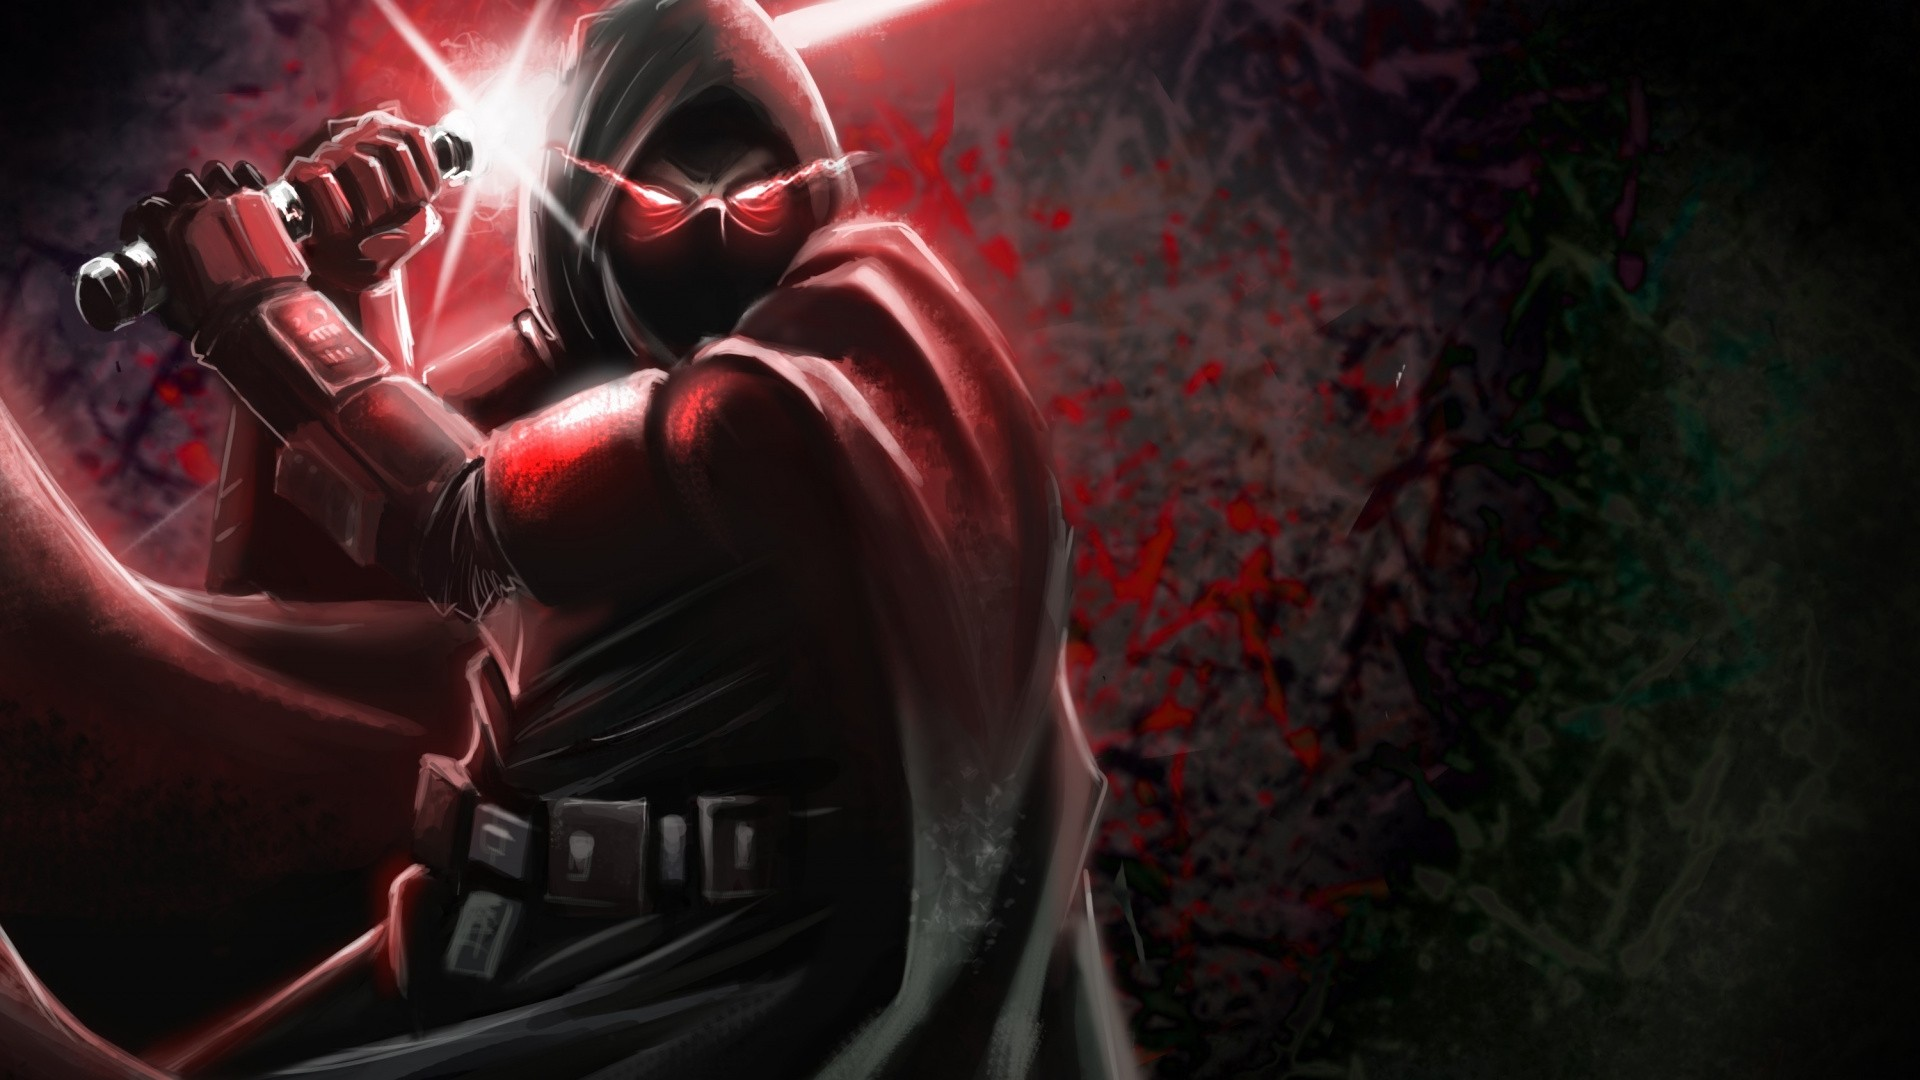 Sith Free Wallpaper and Background